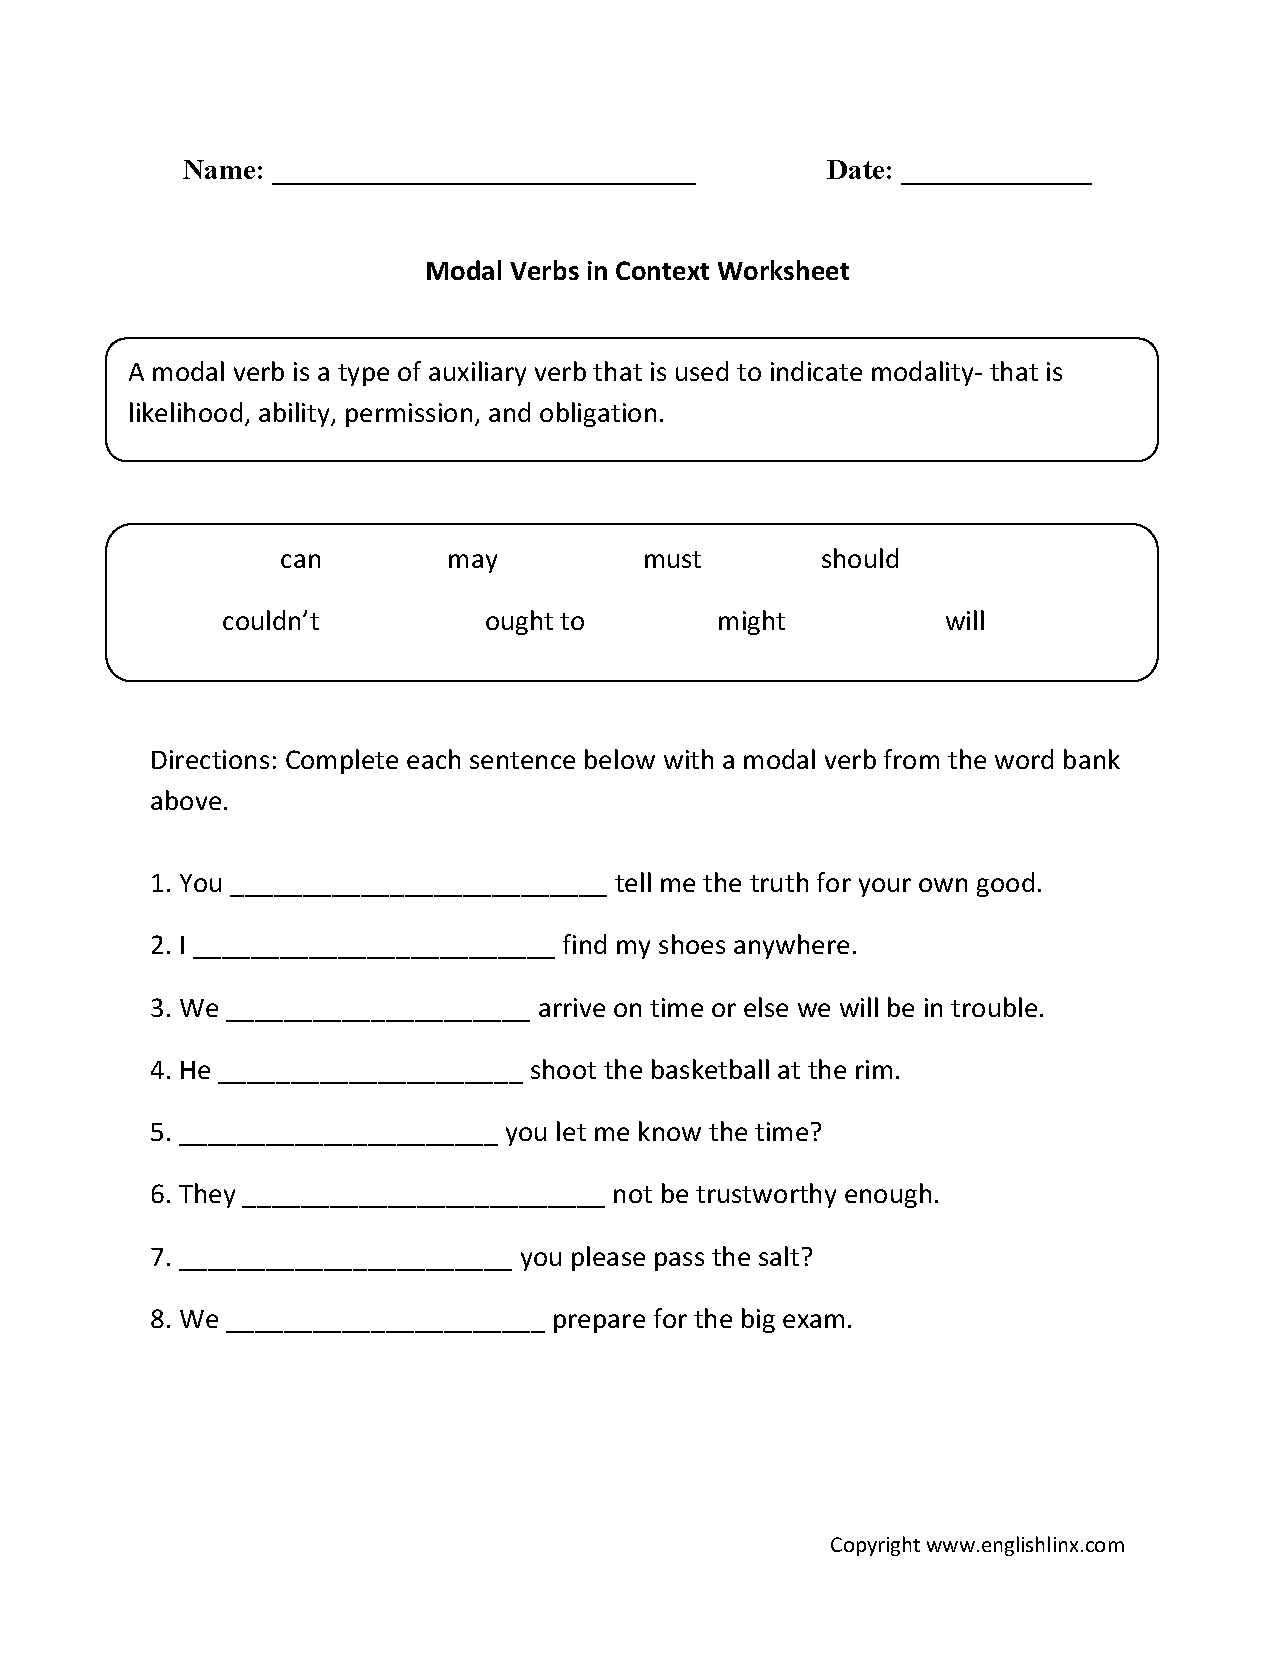 Worksheet Worksheet Verb englishlinx com verbs worksheets modal worksheets